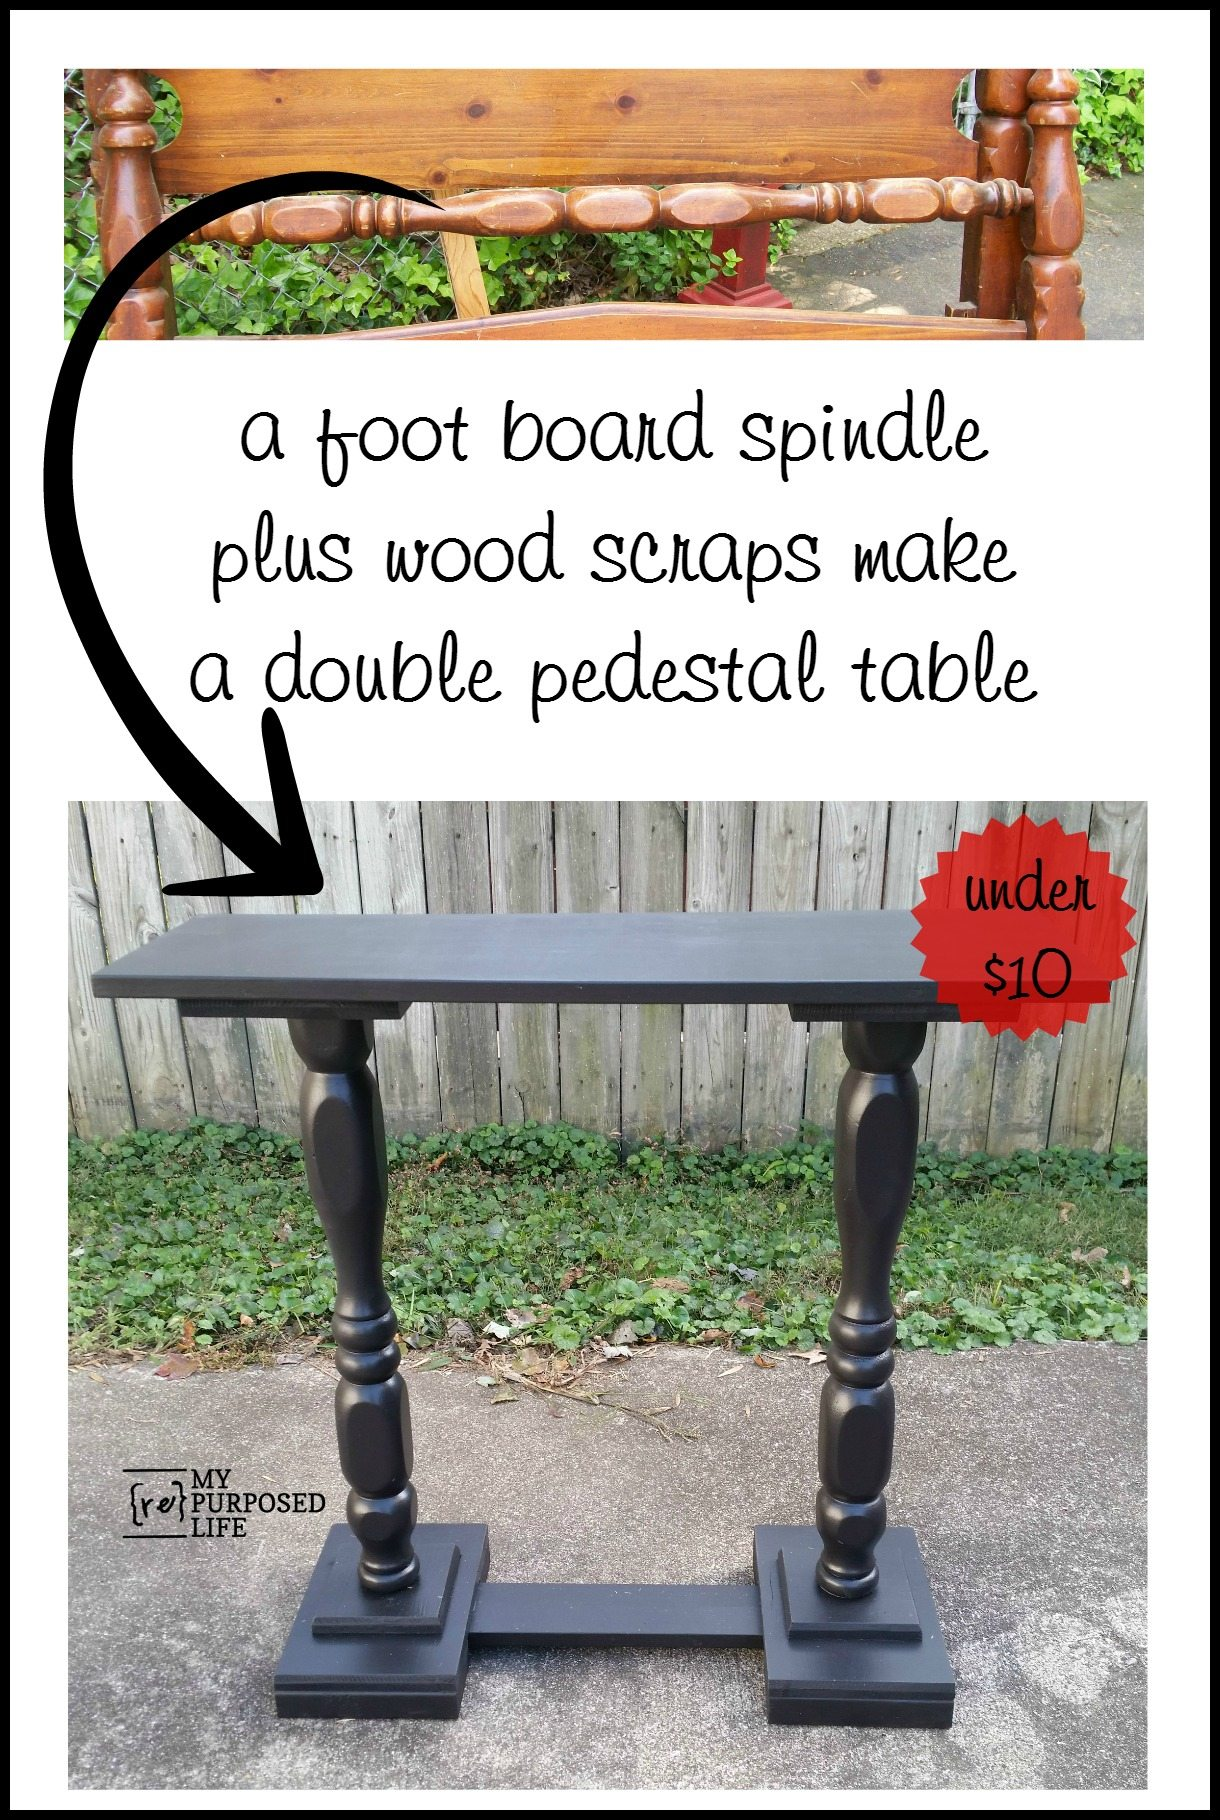 Repurposed Bed Spindle And Wood Scraps Make A Double Pedestal Sofa Table  For Under Ten Dollars